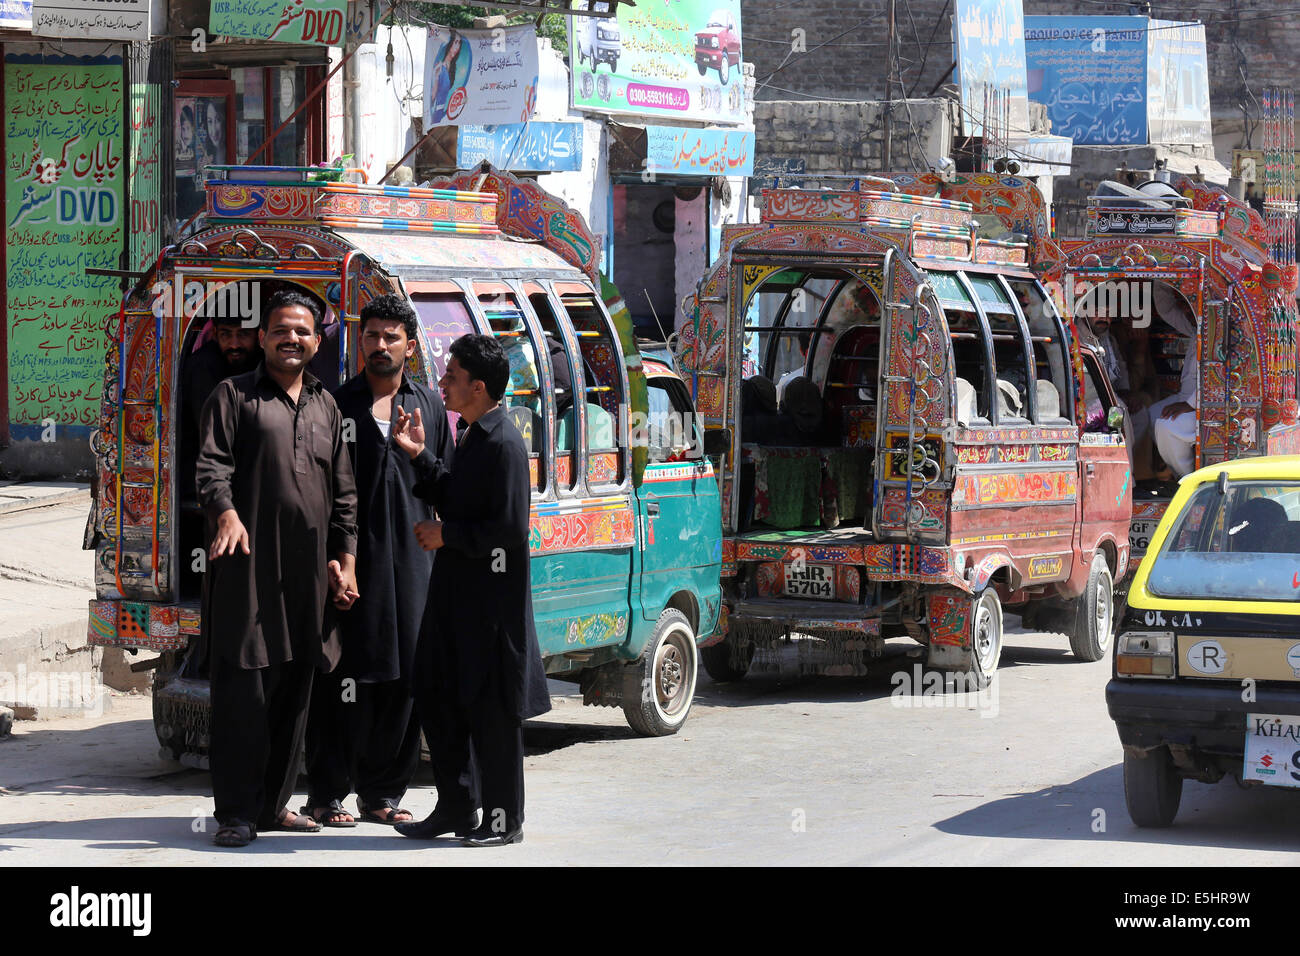 Colorful decorated mini busses, taxi cabs, public transport in Rawalpindi, Pakistan - Stock Image